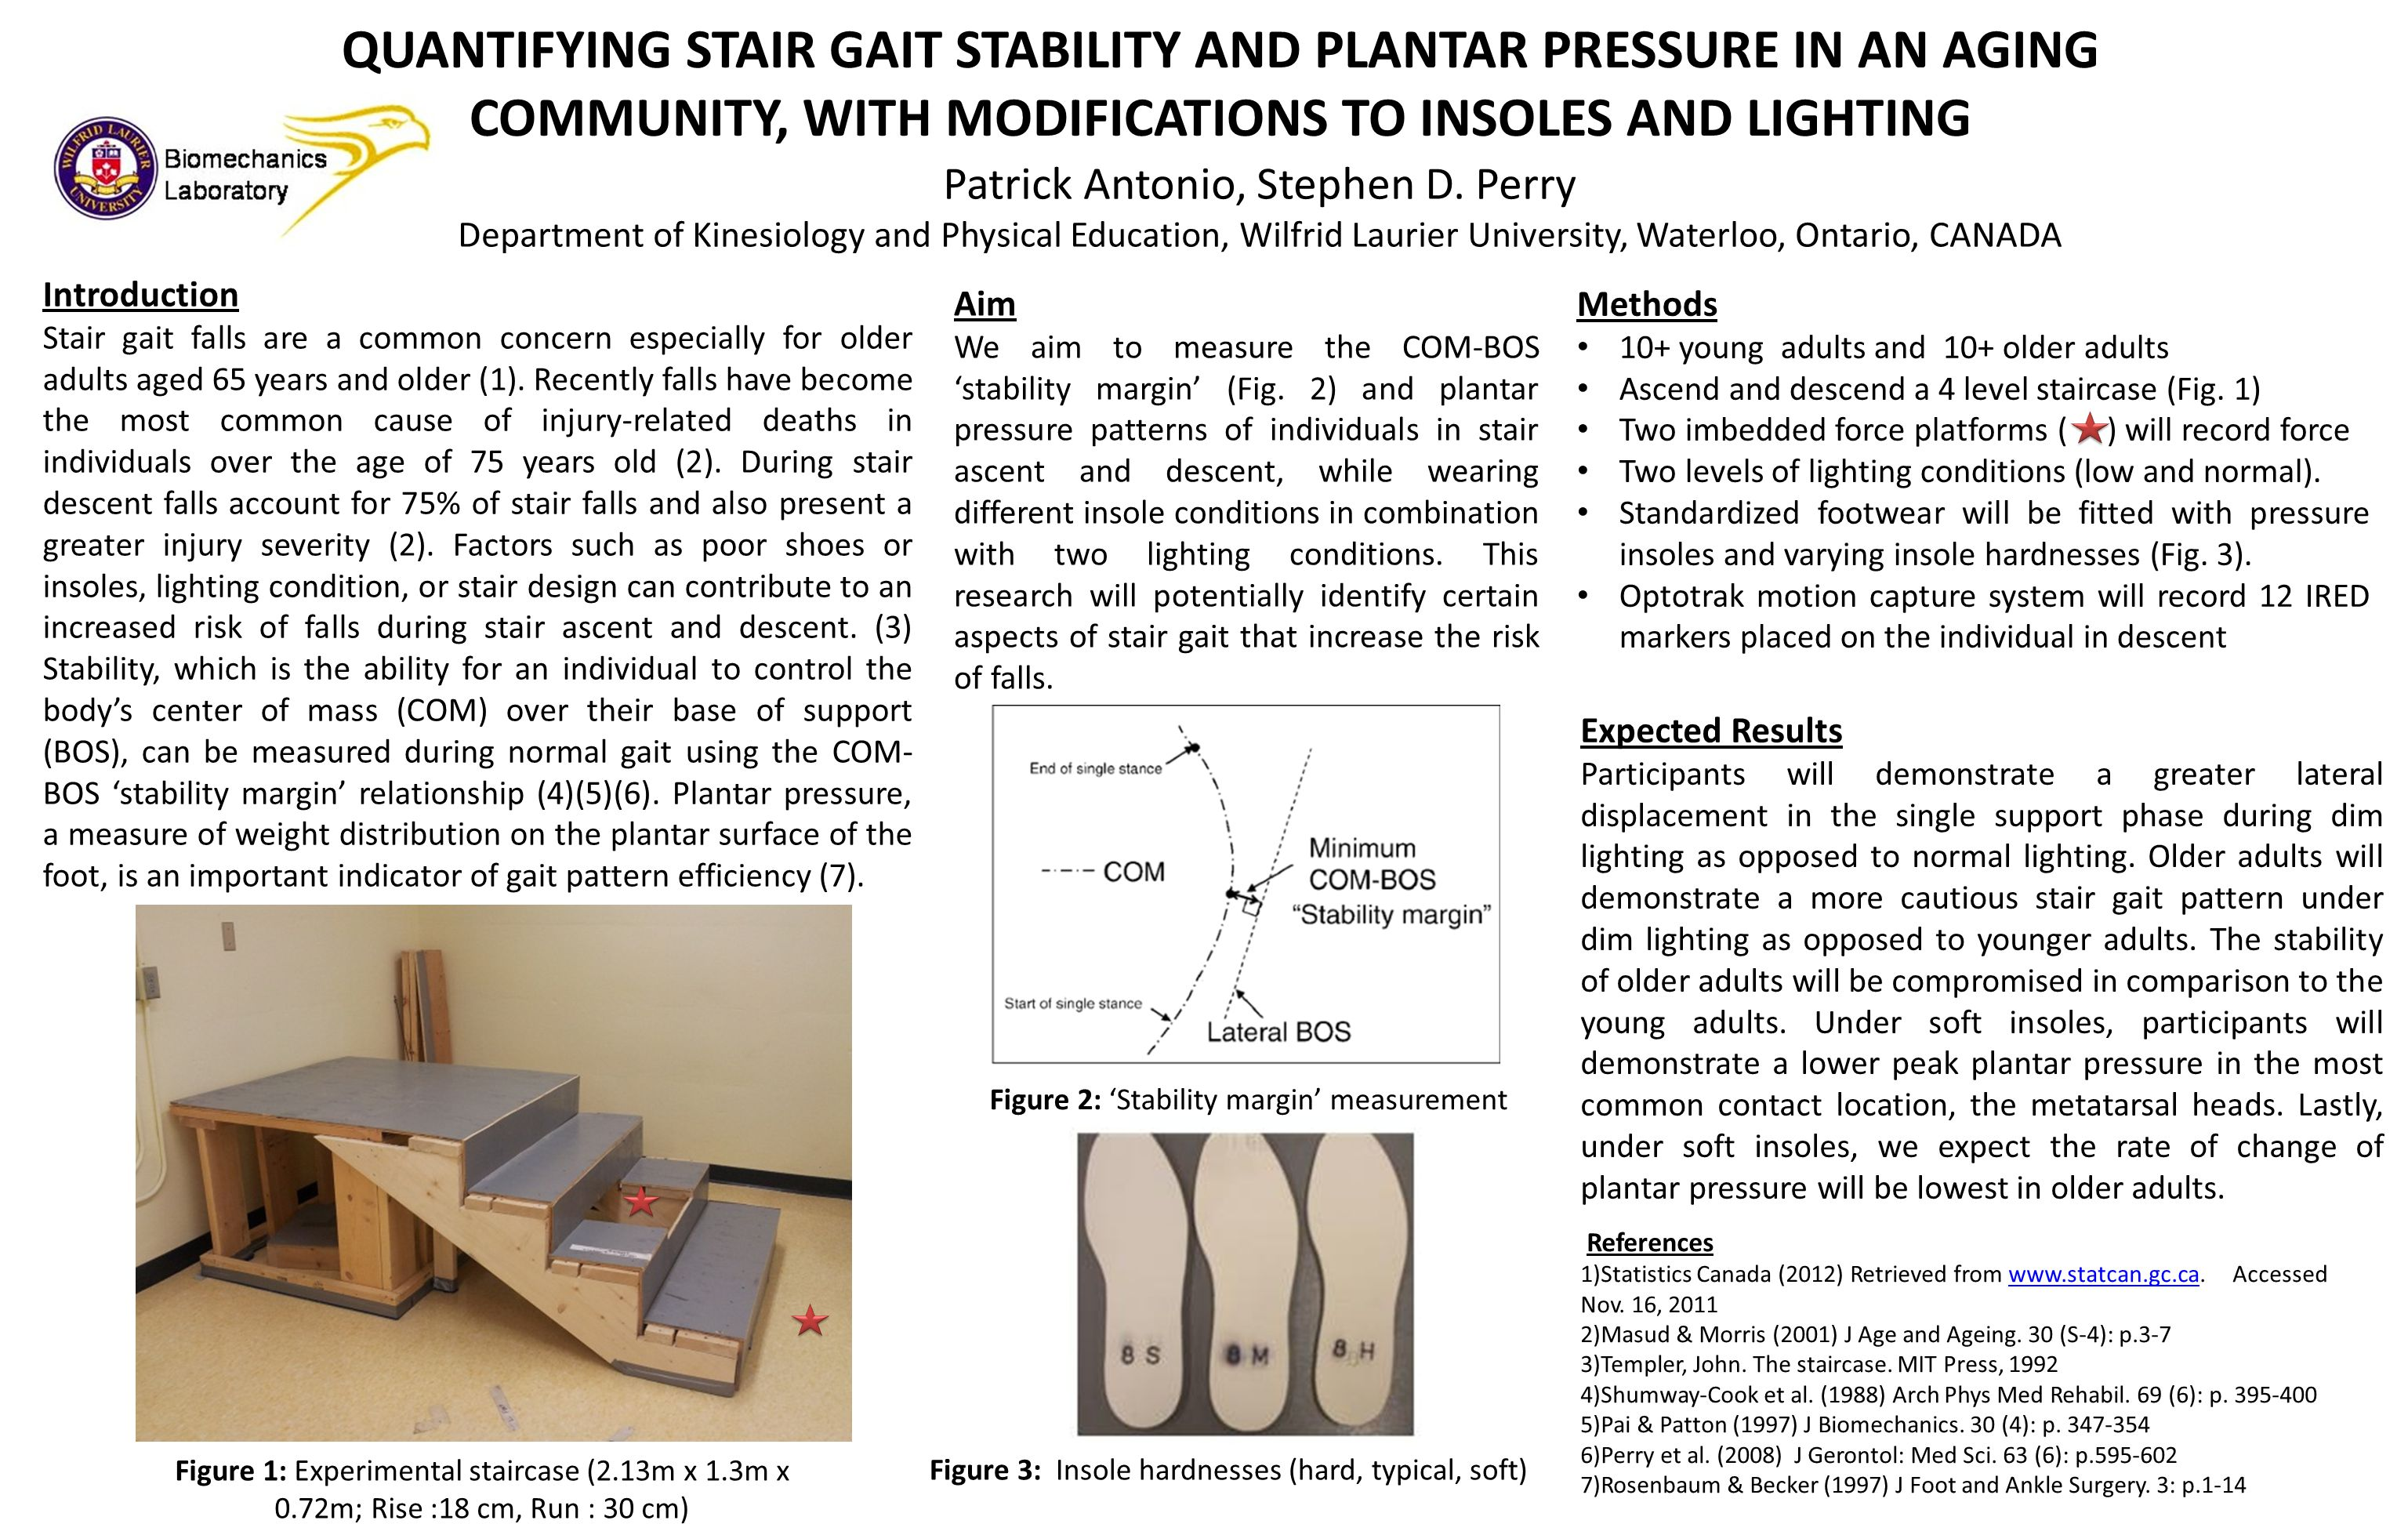 QUANTIFYING STAIR GAIT STABILITY AND PLANTAR PRESSURE IN AN AGING COMMUNITY, WITH MODIFICATIONS TO INSOLES AND LIGHTING Introduction Stair gait falls are a common concern especially for older adults aged 65 years and older (1).